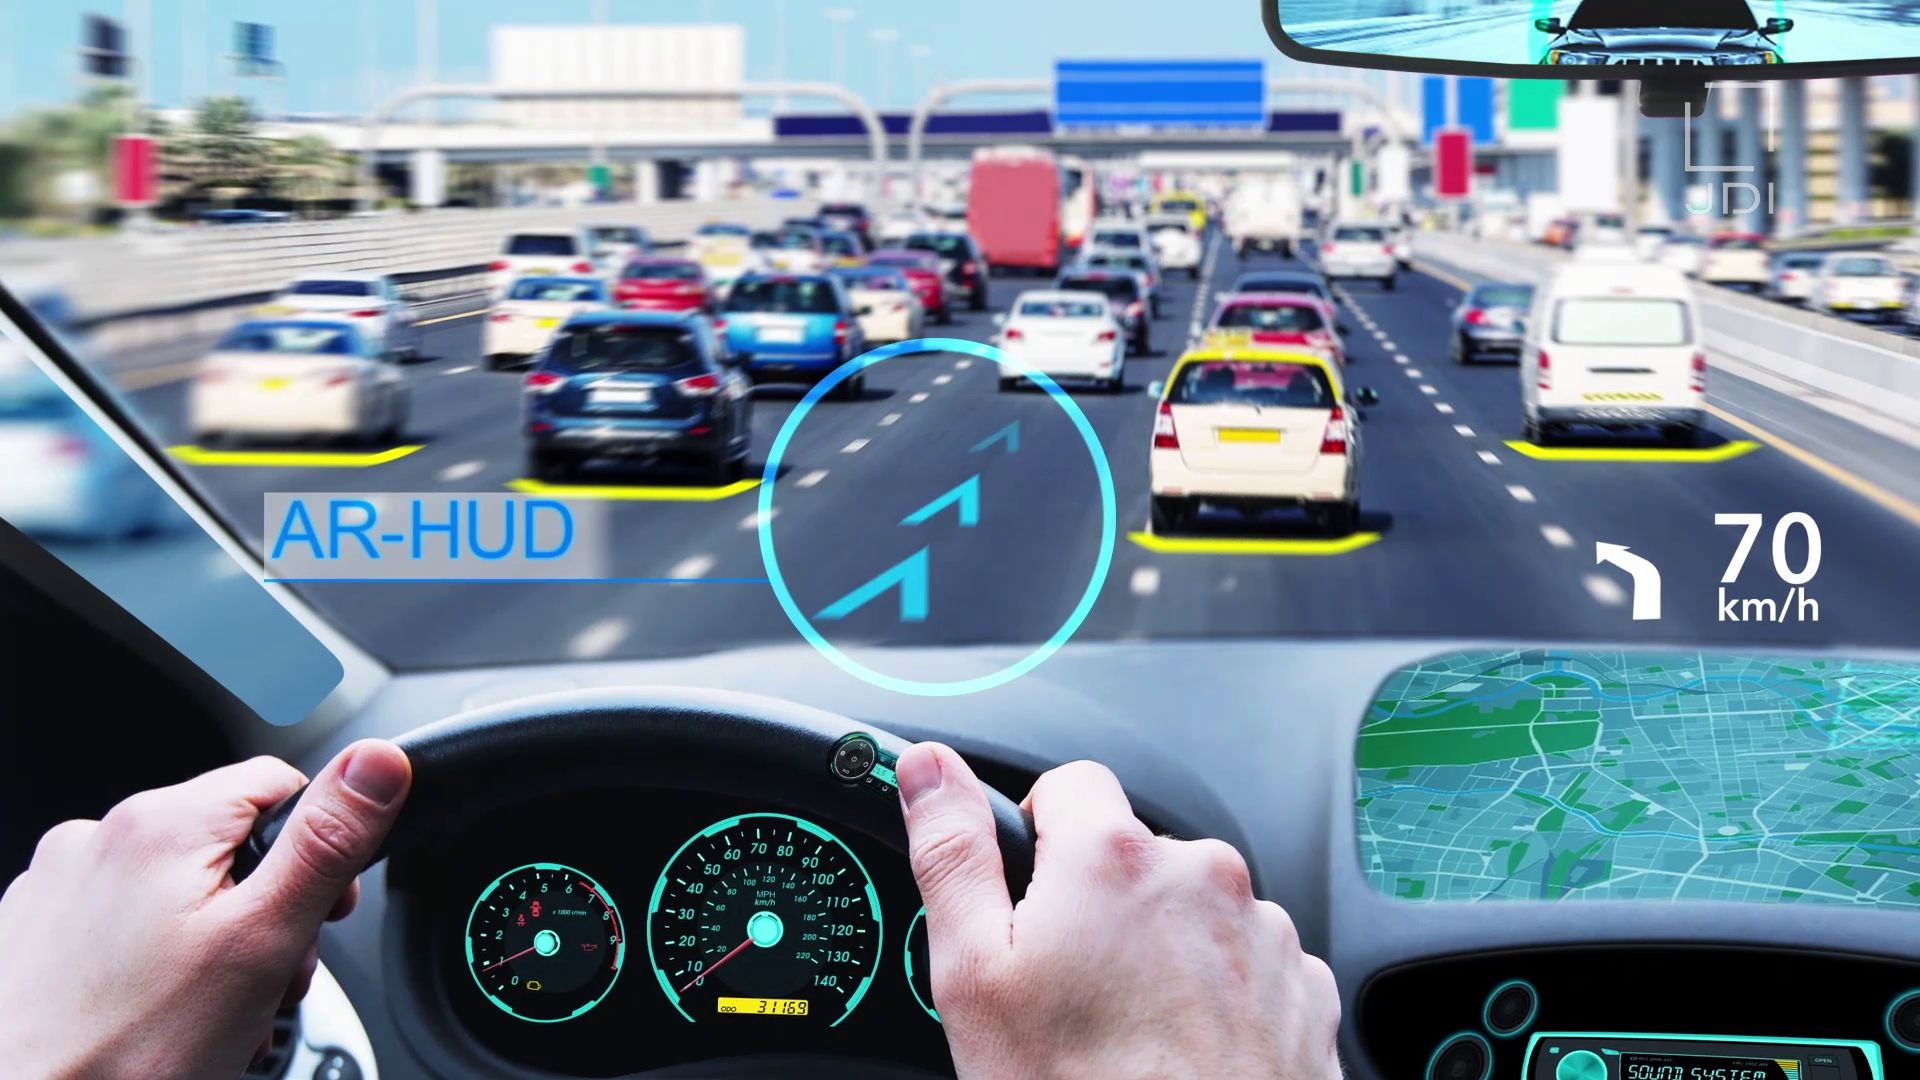 Automotive_Display_Head_up_display